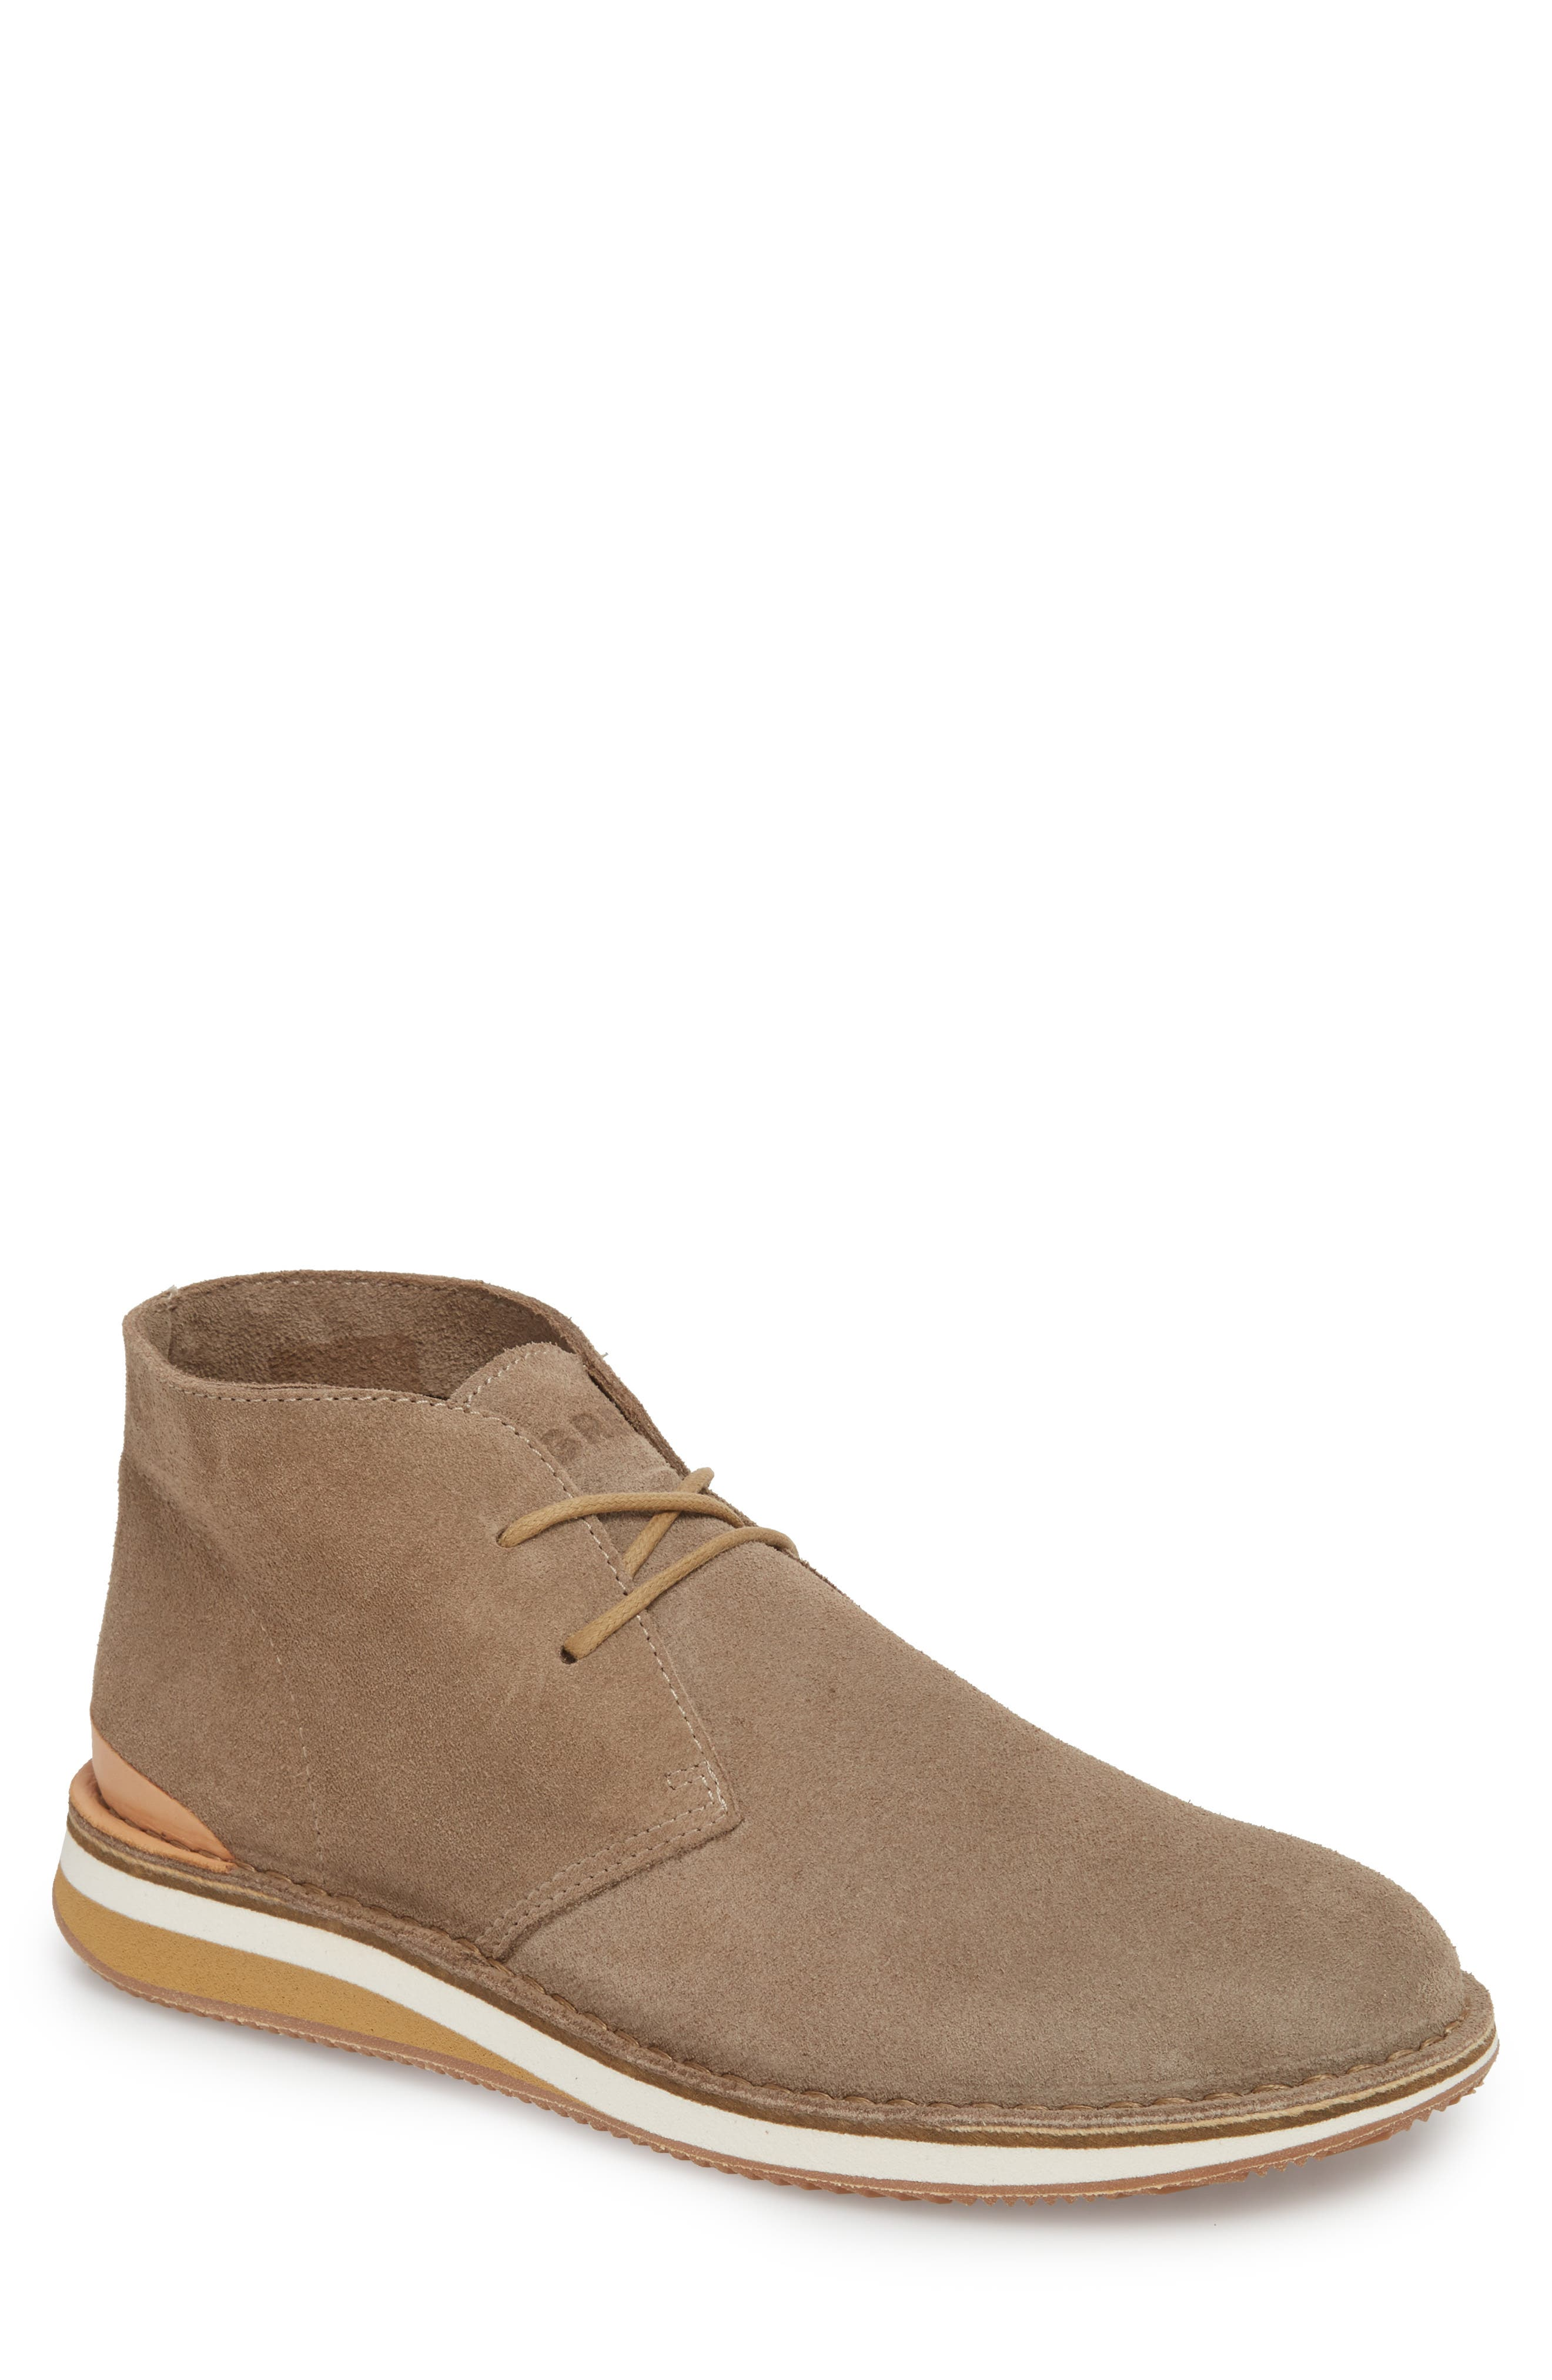 Hirsh Chukka Boot,                         Main,                         color, 271